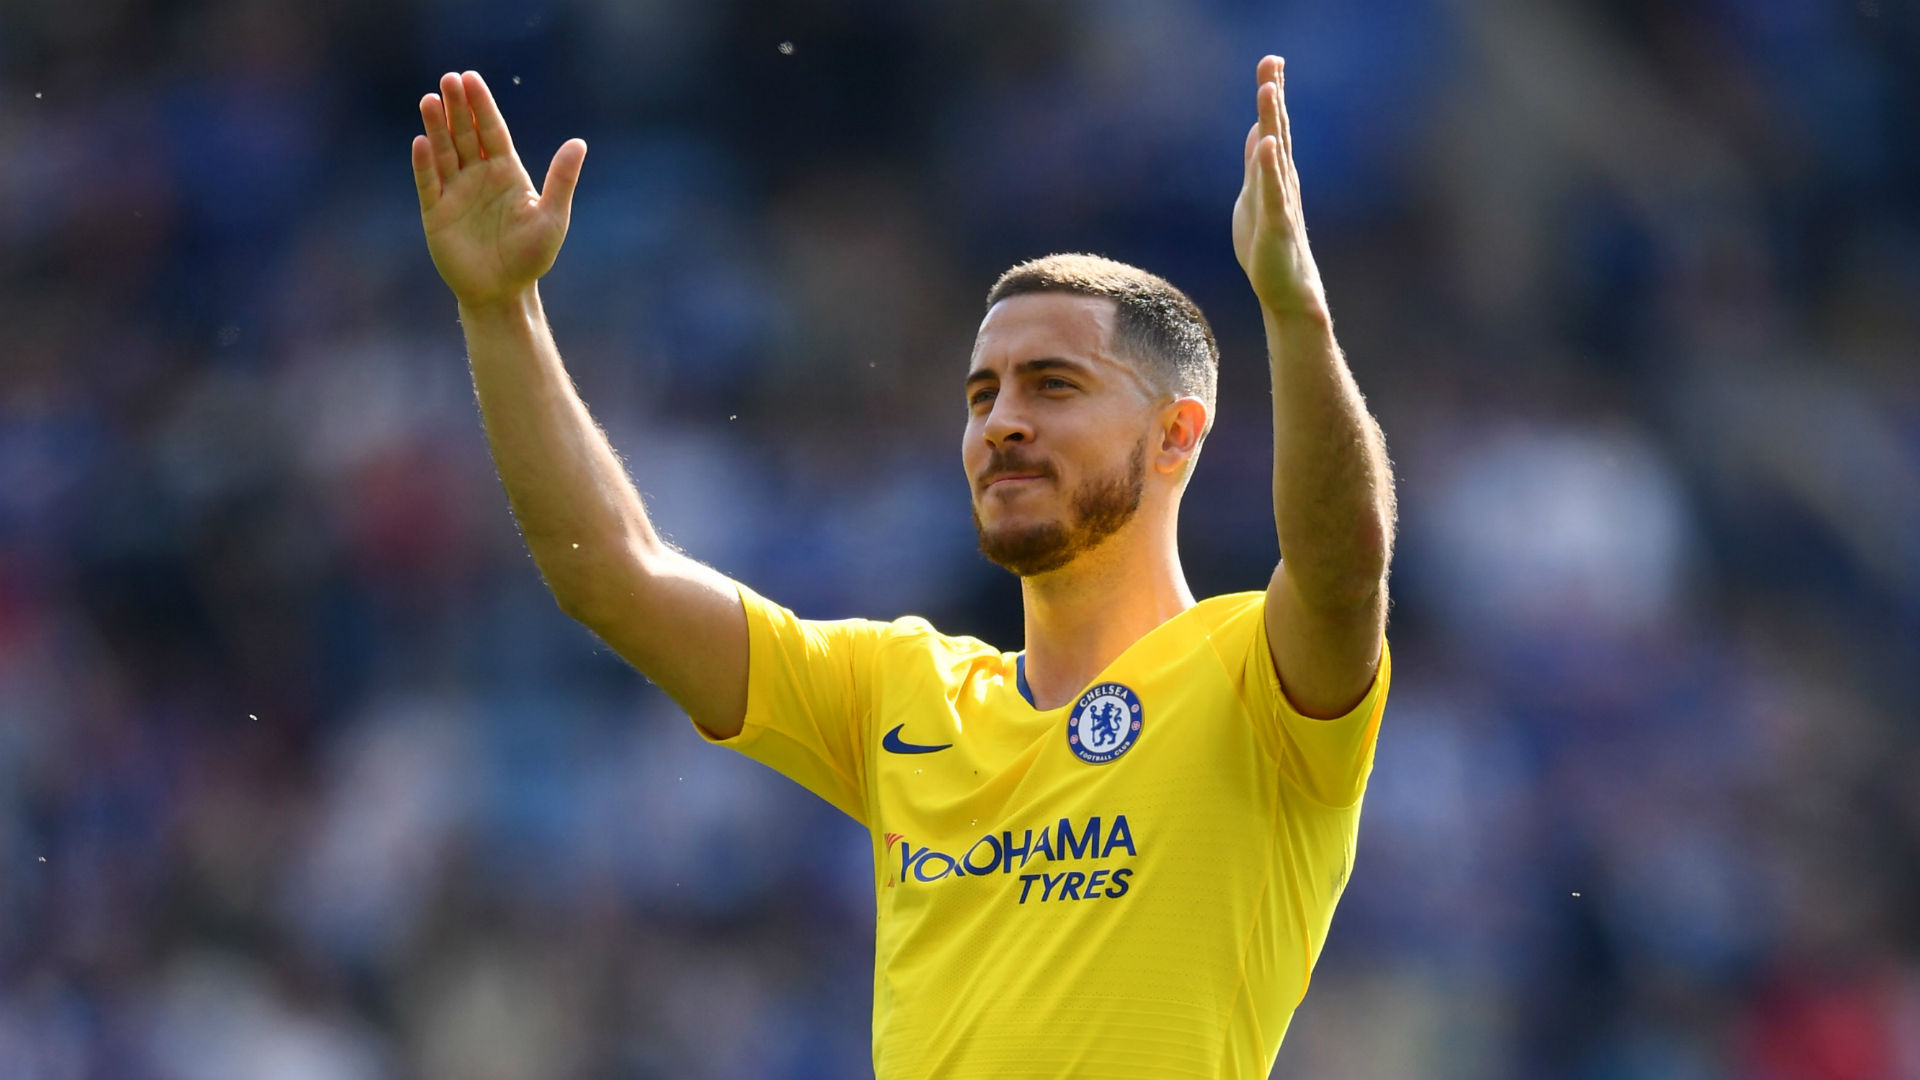 Sarri hopes Hazard will stay at Chelsea but will respect decision if he leaves